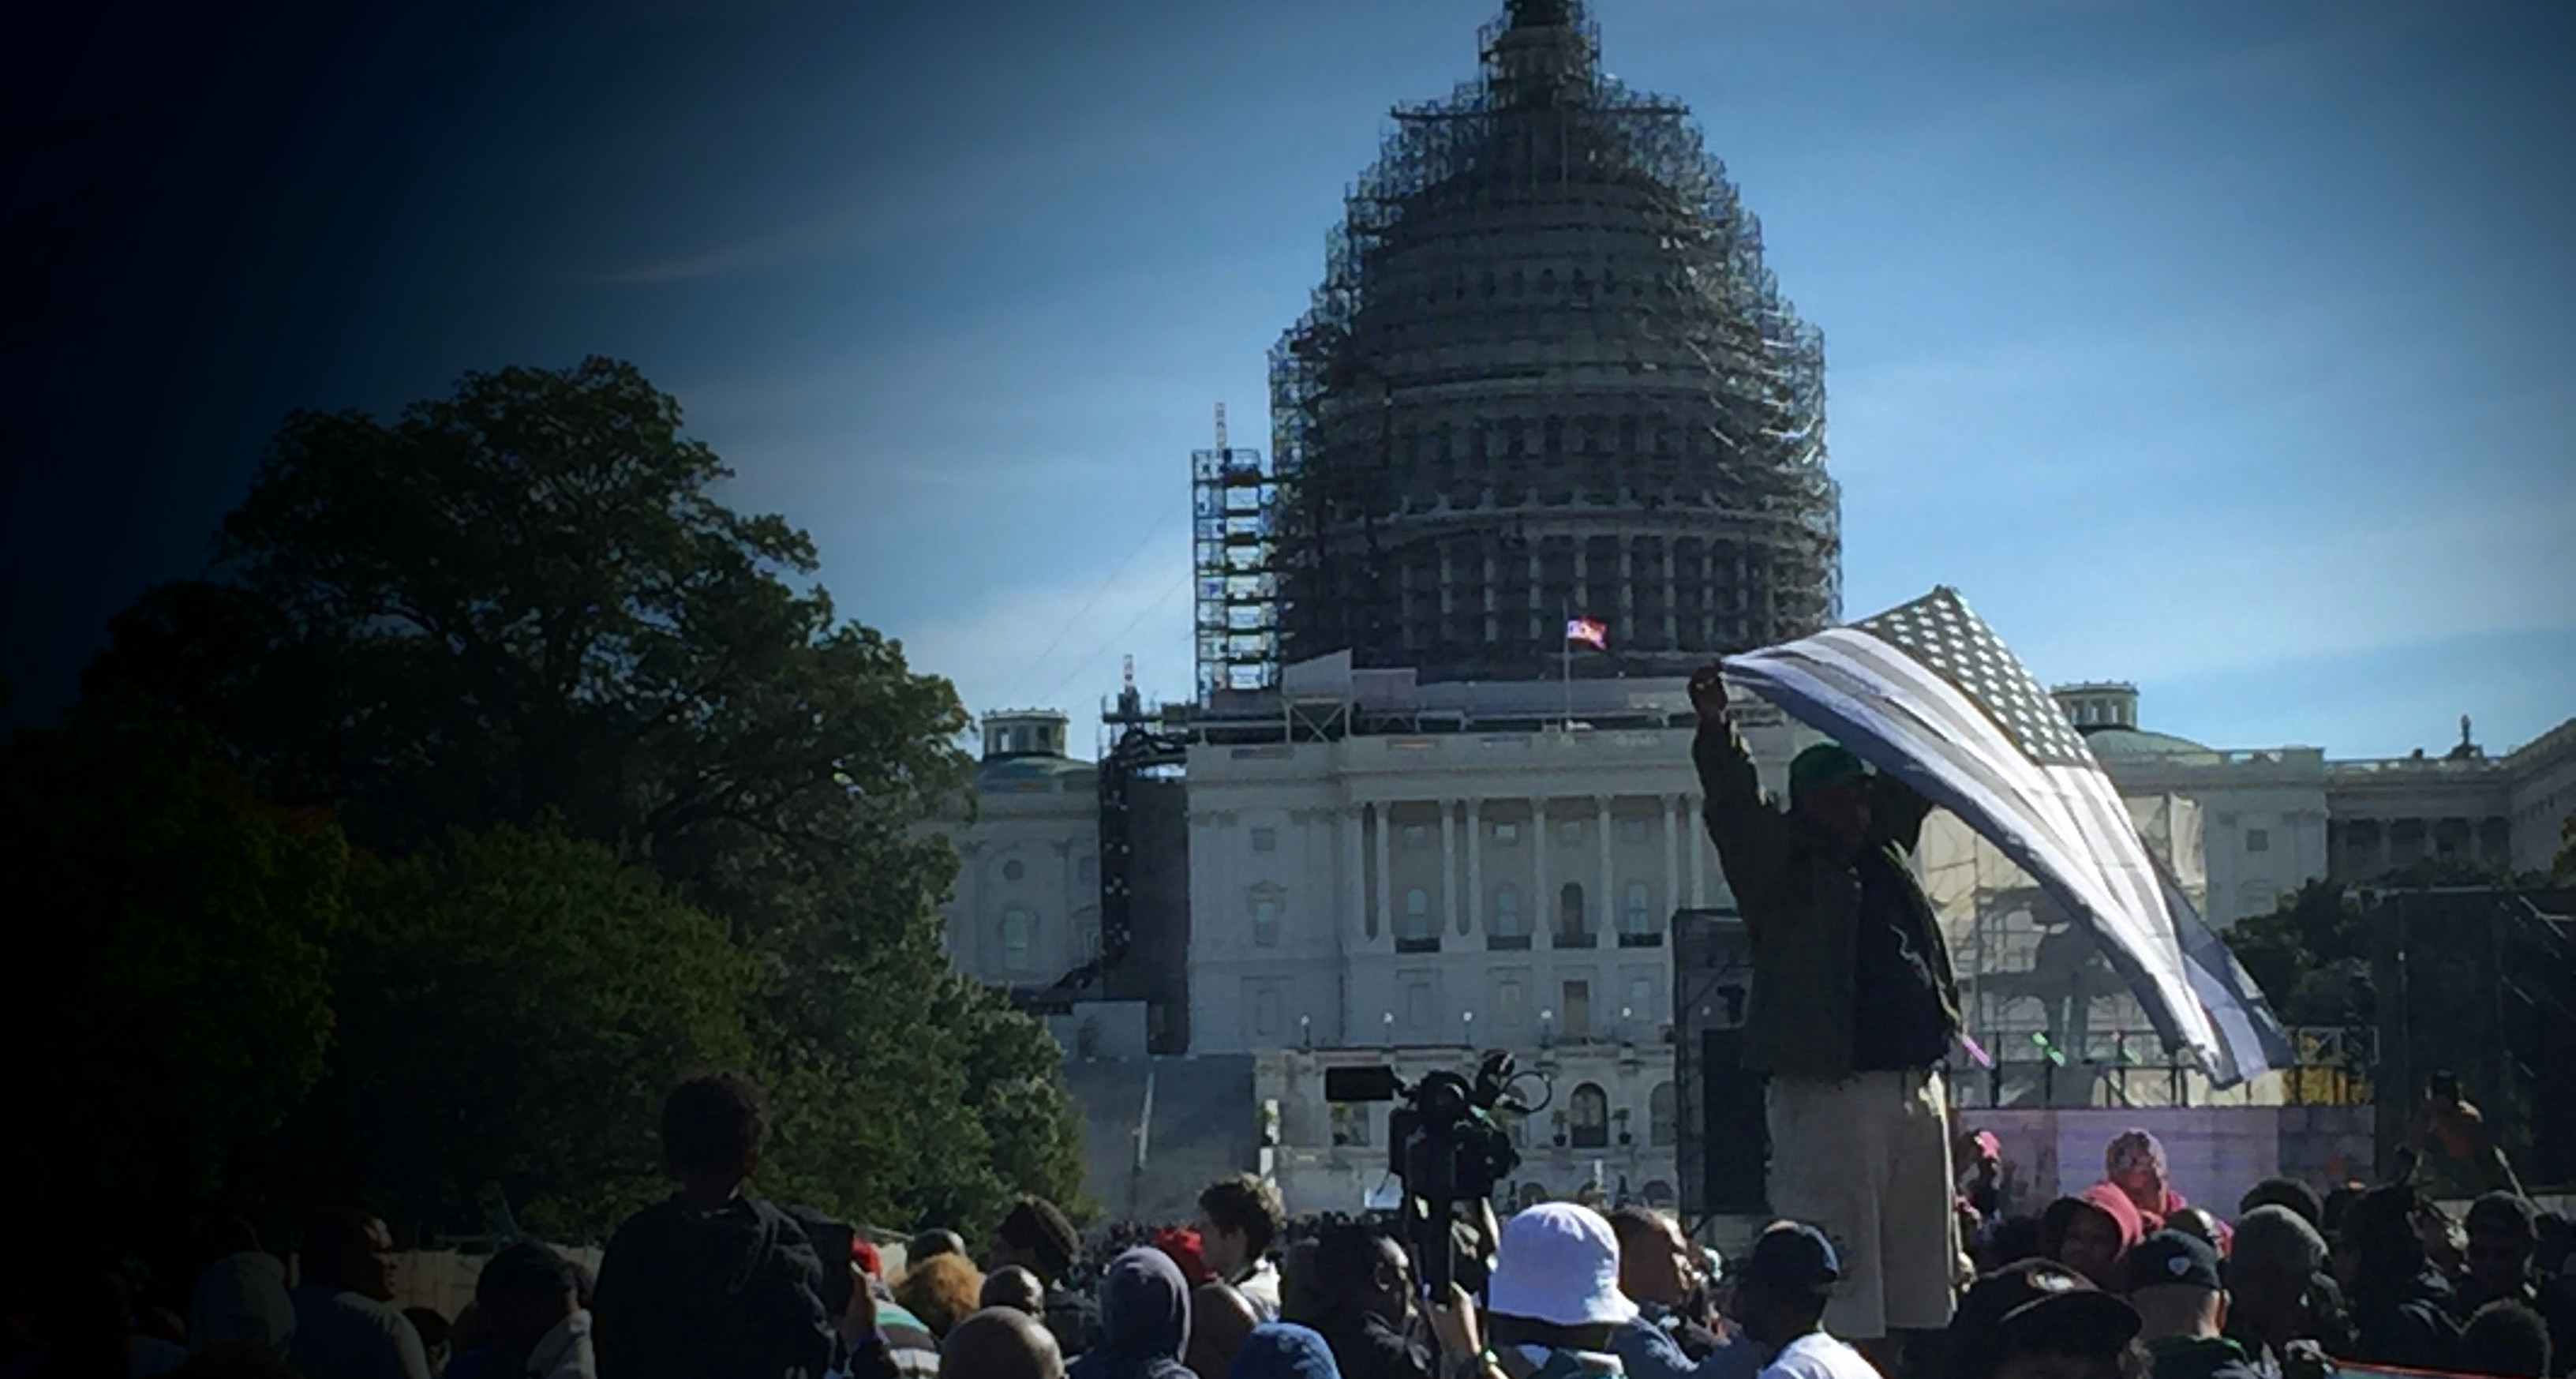 The Million Man March, October 10, 2015. A man holds a faded American flag, symbolizing America failing its citizens and existing in a state of faded glory.